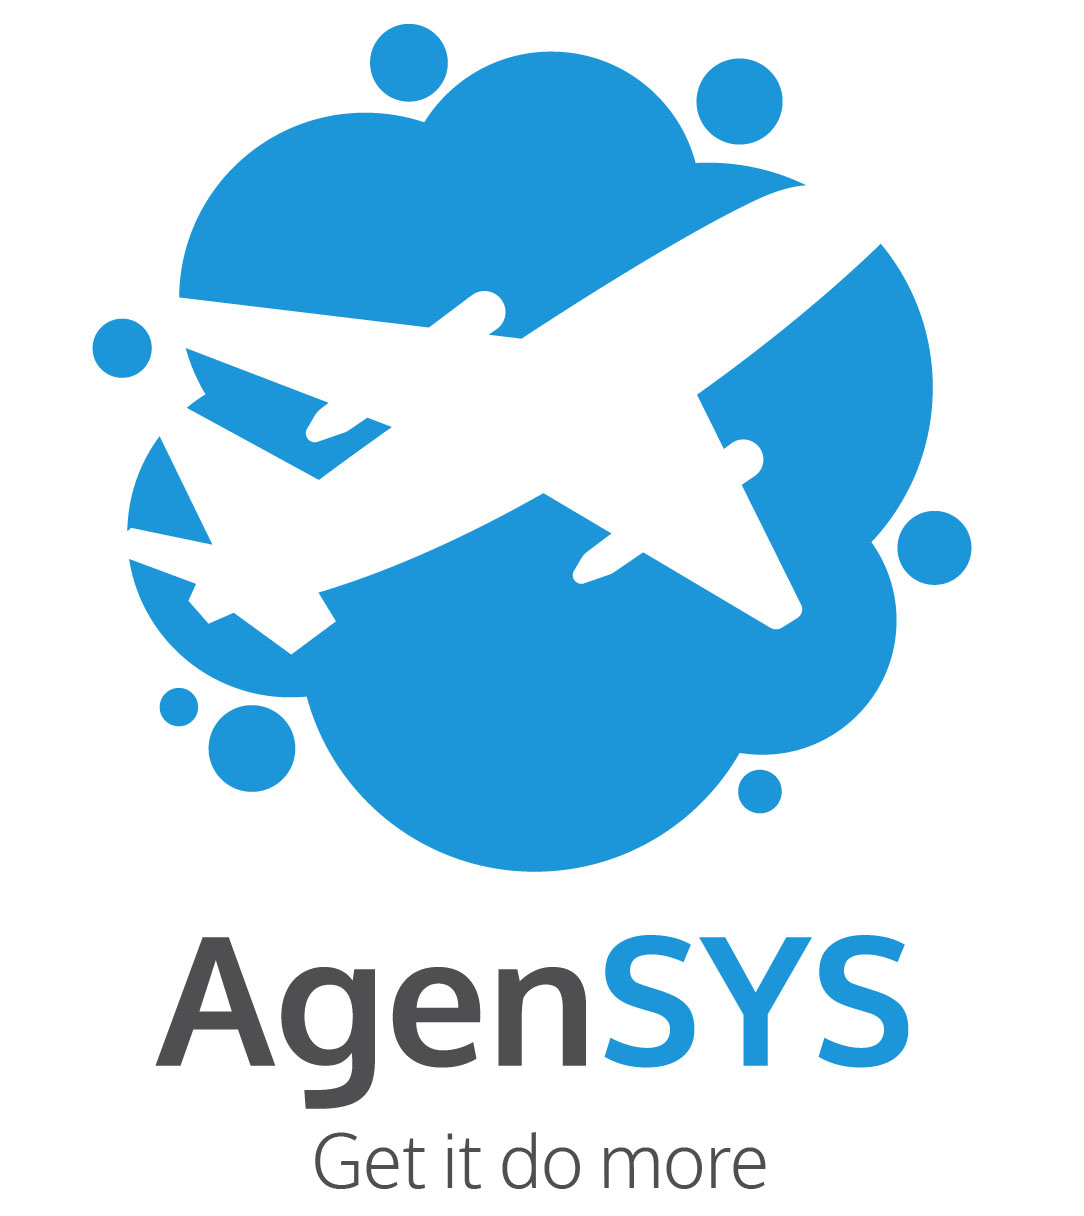 Agensys